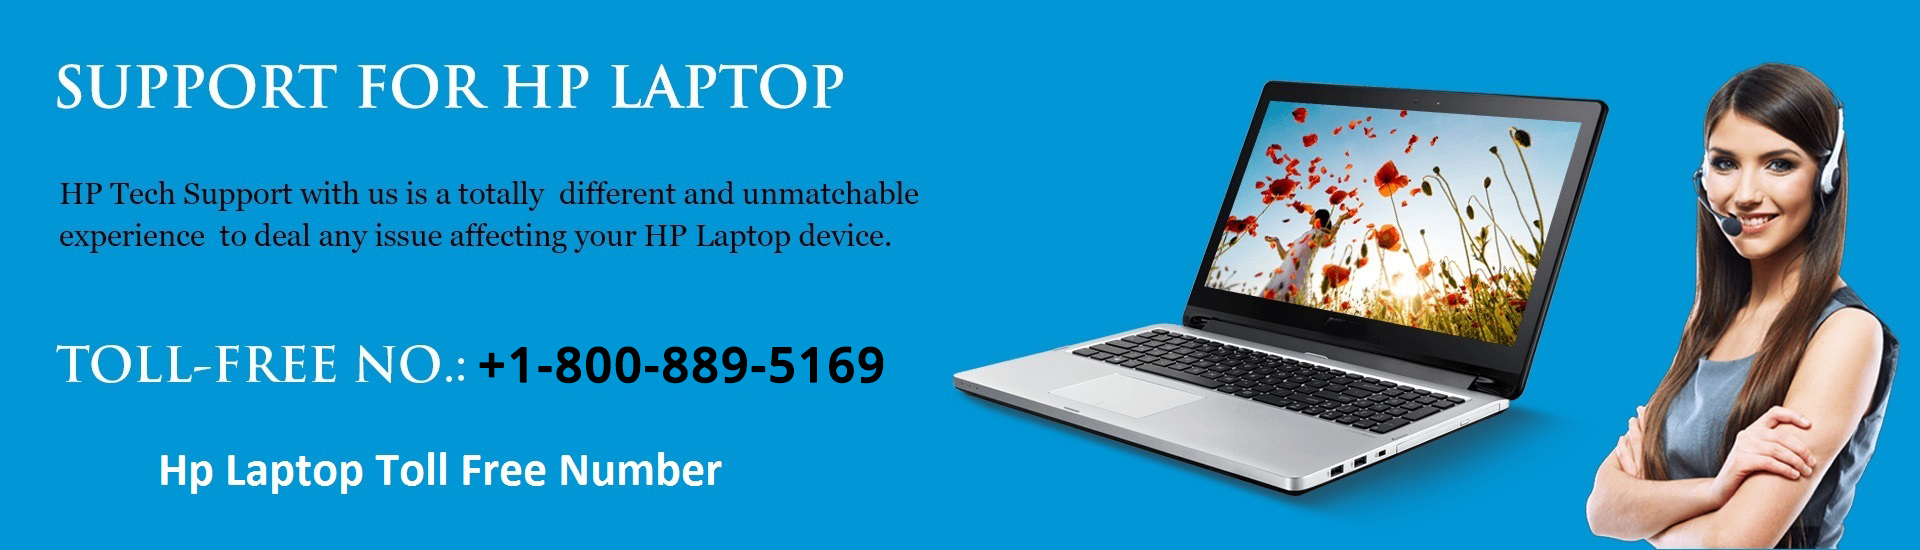 Help Hp Customer Care Number 1 800 889 5169 Toll Free Usa